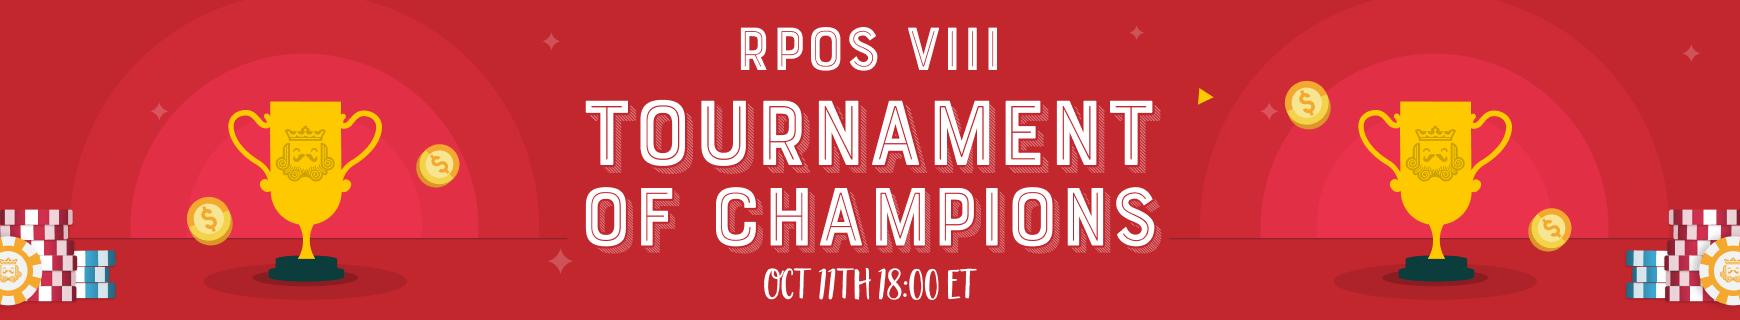 Rpos viii   tournament of champions   870x160 %28promotion page%29 2x